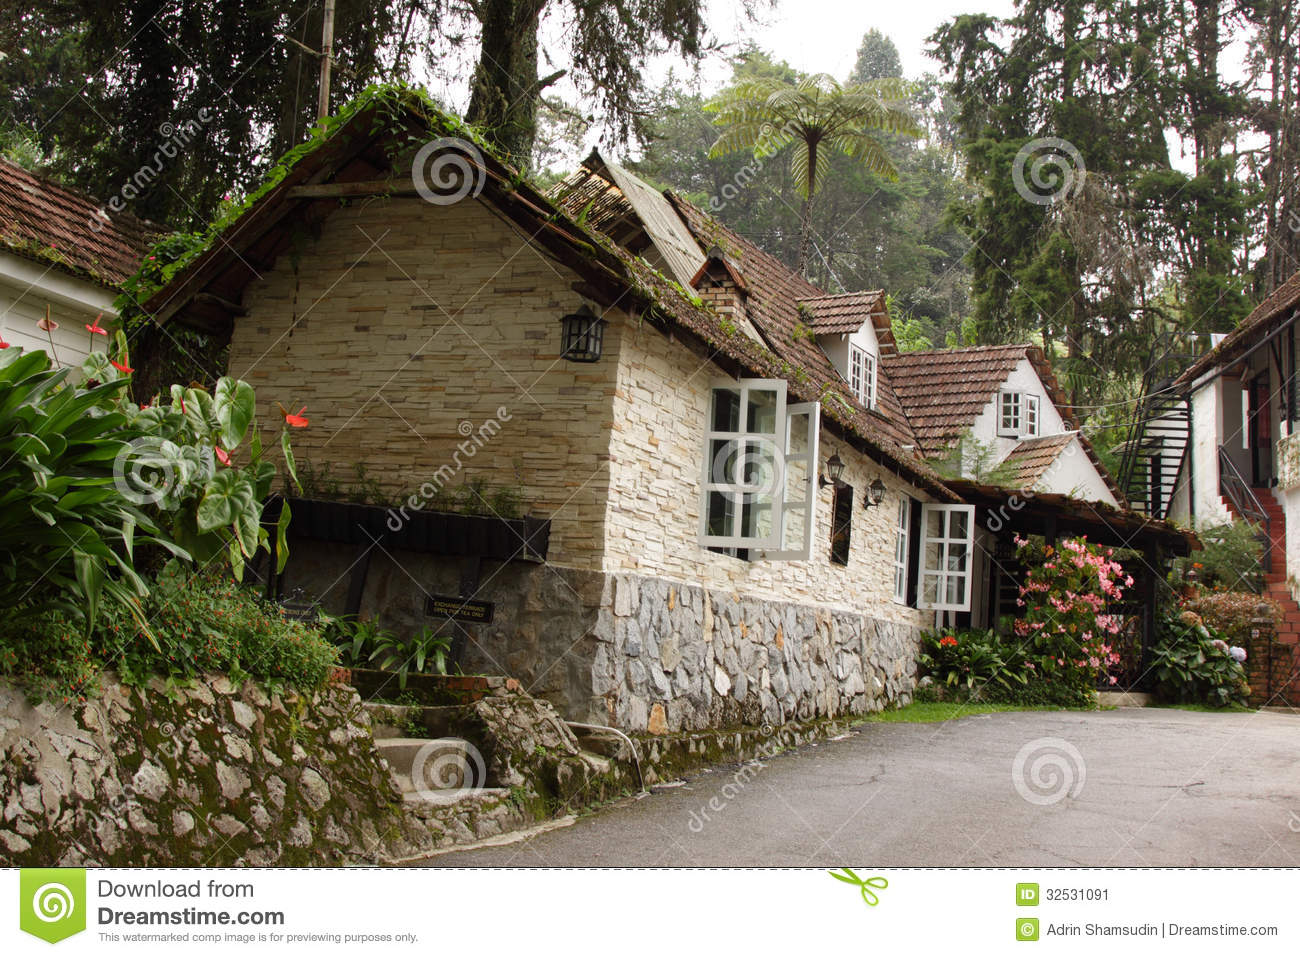 Plans For Cottages And Small Houses English Cottage Stock Image Image Of Nature Horizontal